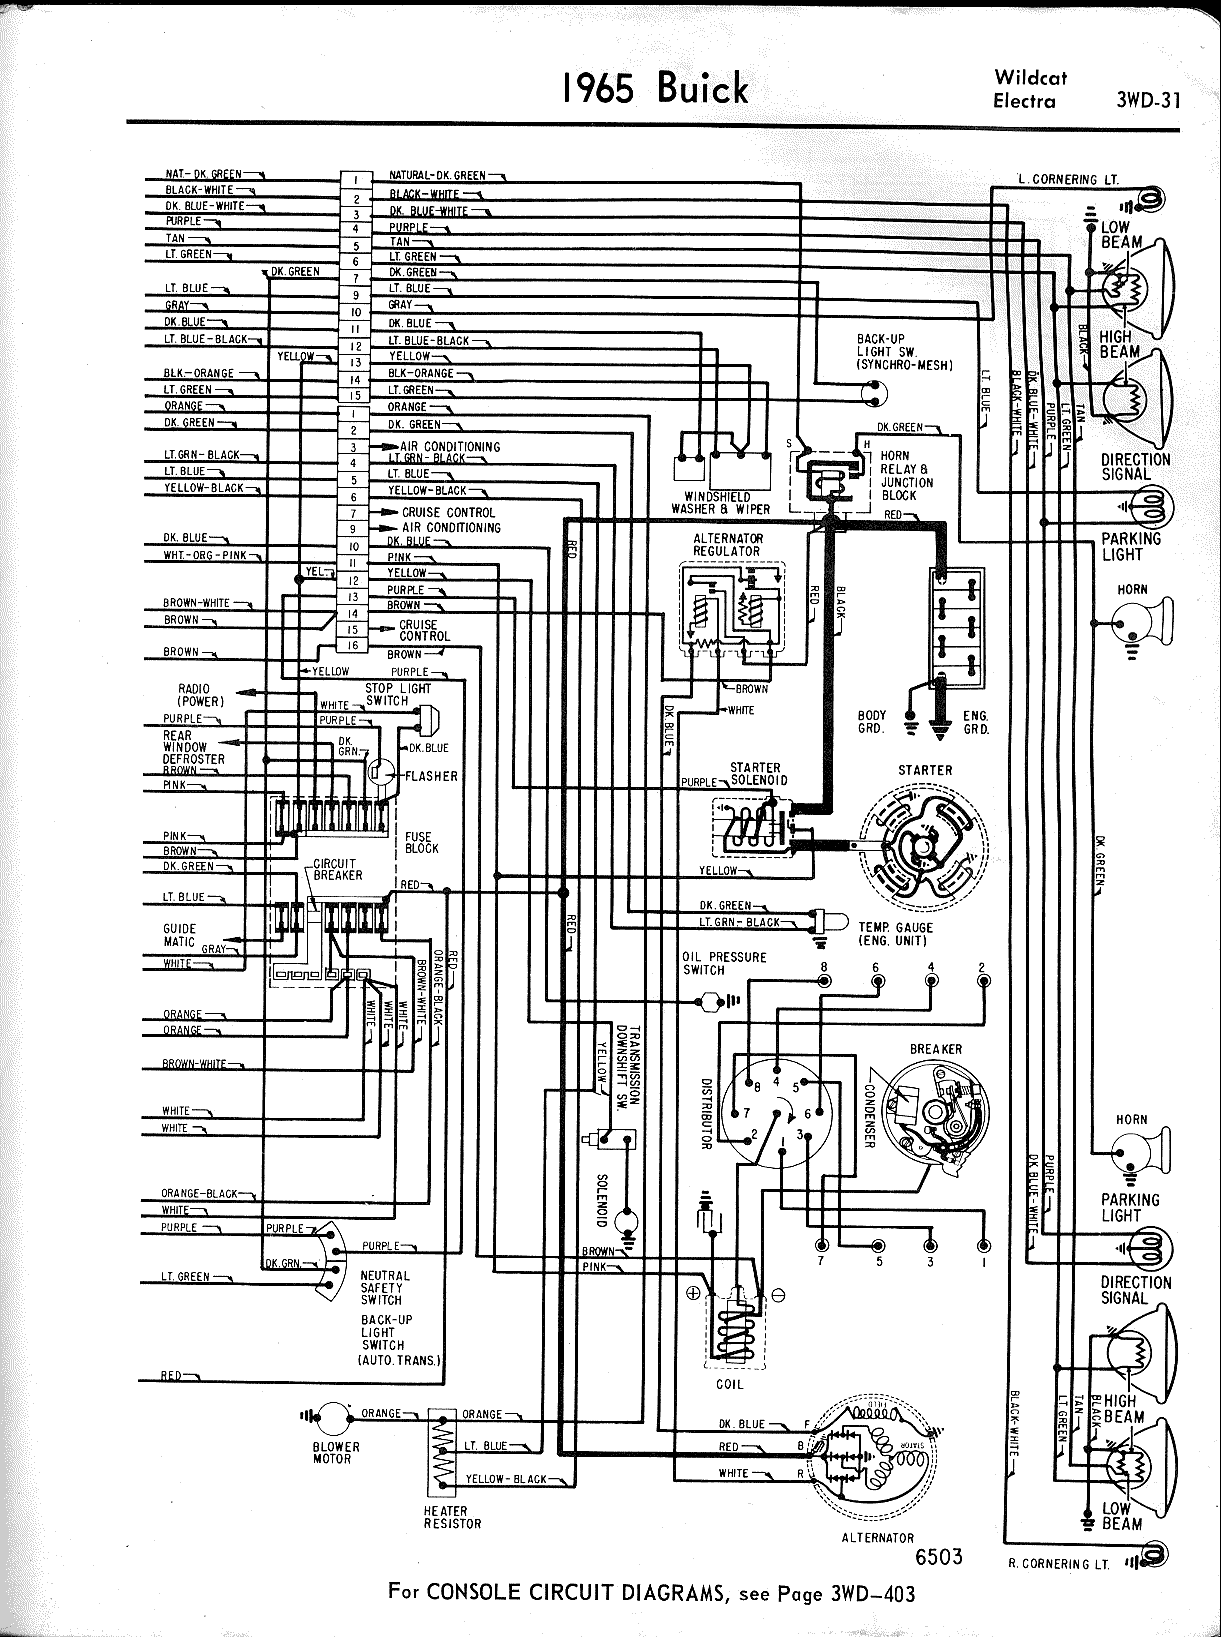 1989 Buick Electra Park Avenue Fuse Box Diagram Circuit Wiring And Images Gallery